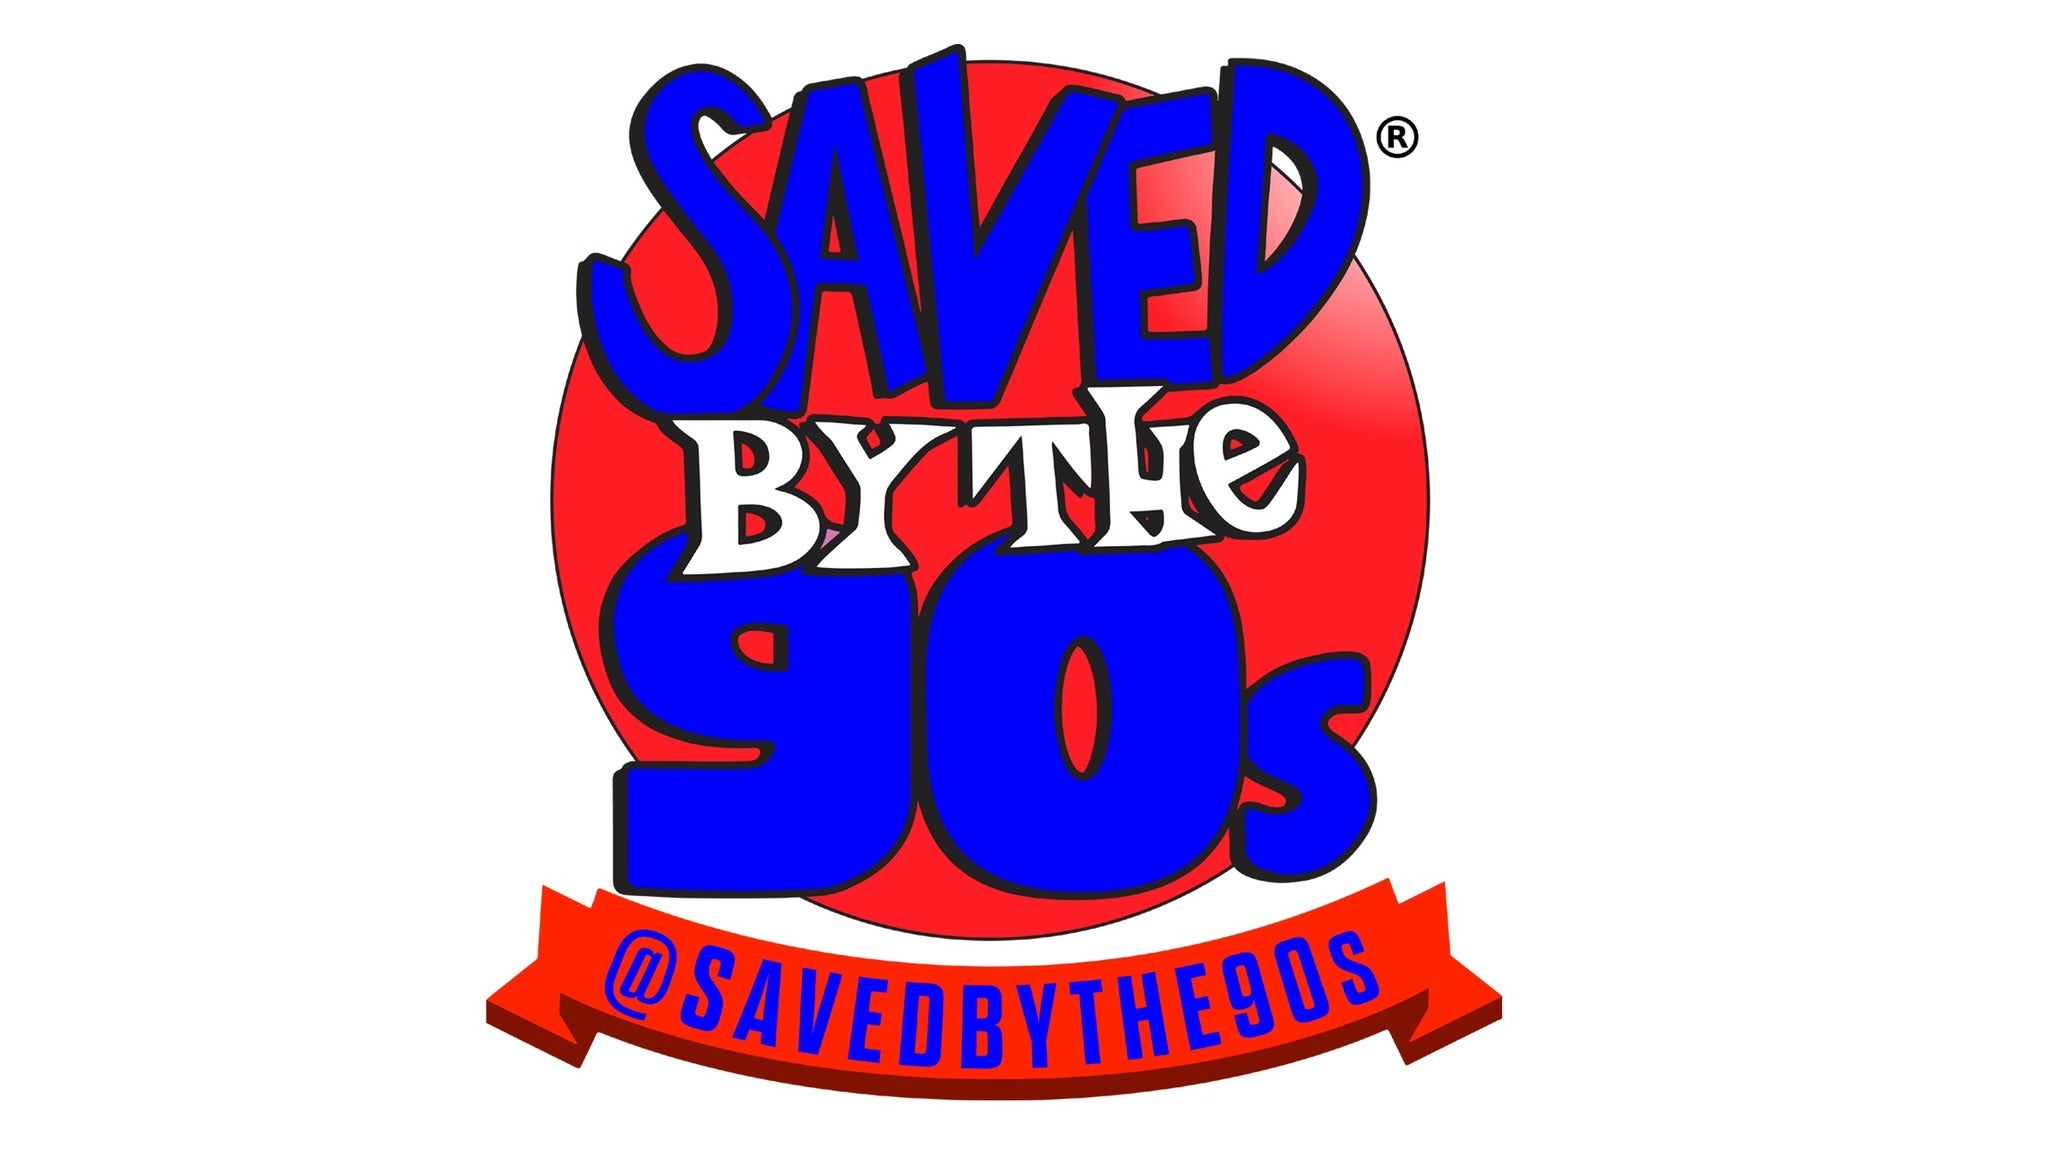 Saved By The 90's at Riverside Municipal Auditorium